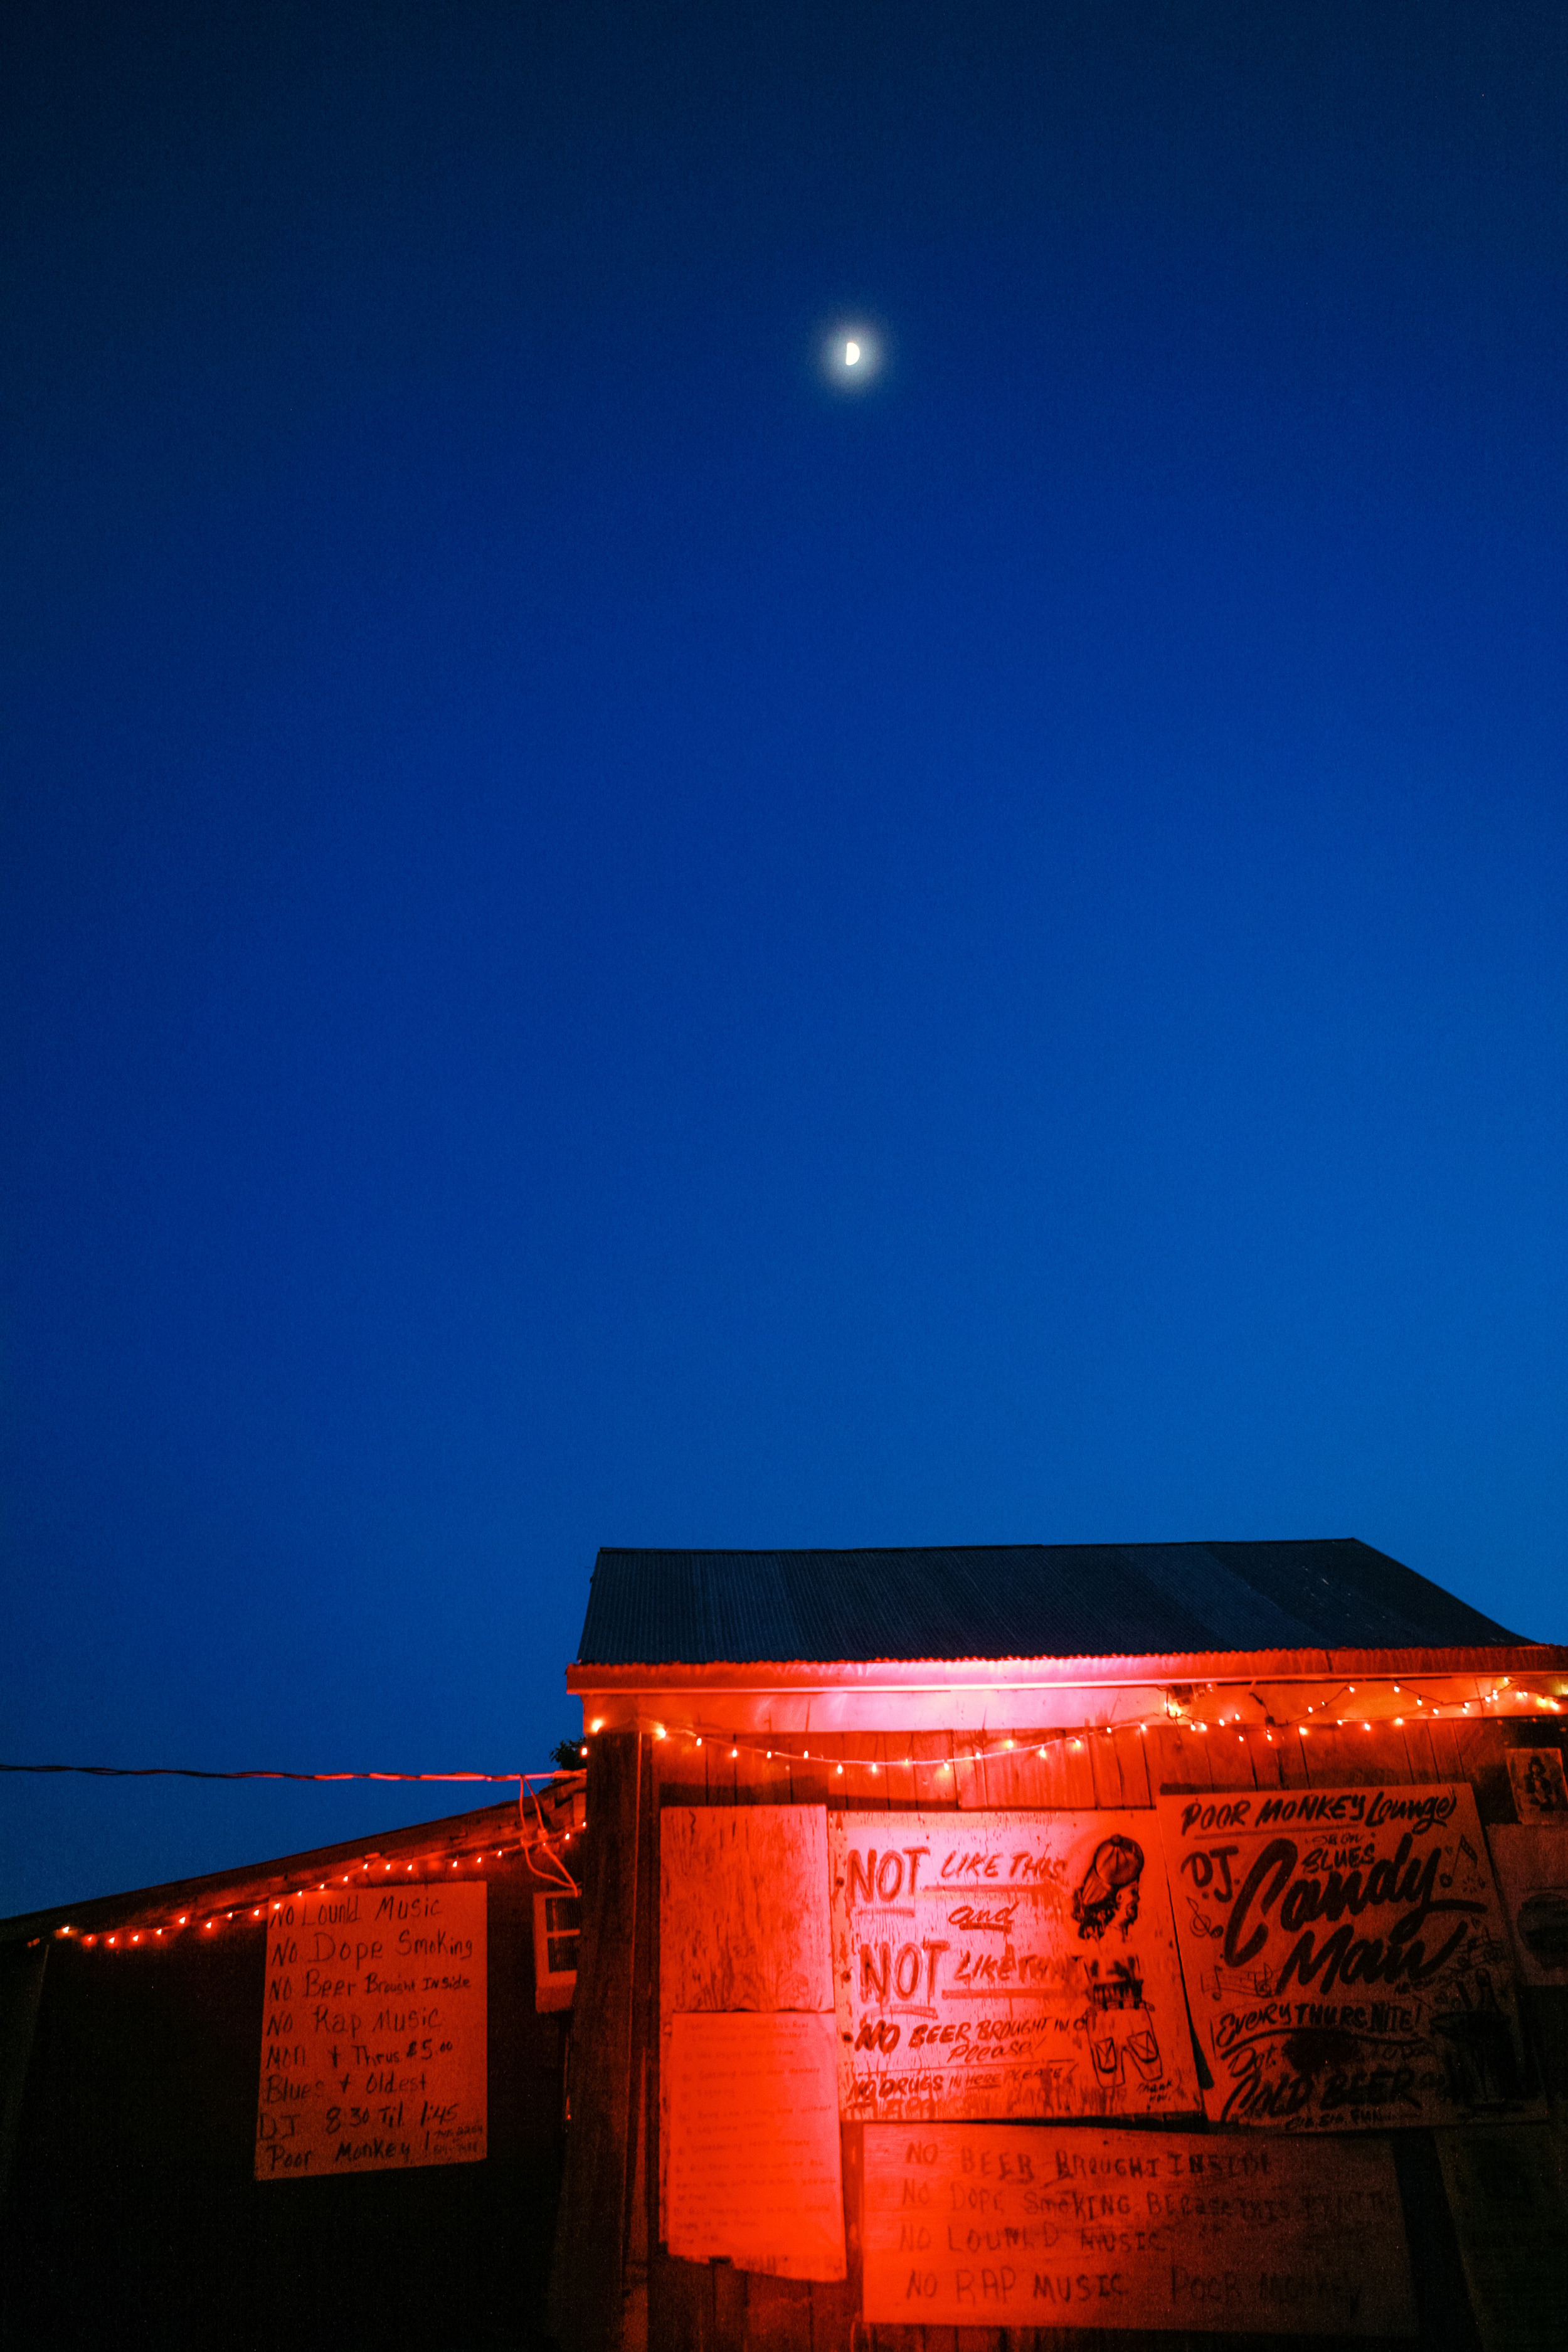 The moon rises above Po' Monkey's juke joint during the night of Kate and John's Mississippi Delta Wedding.